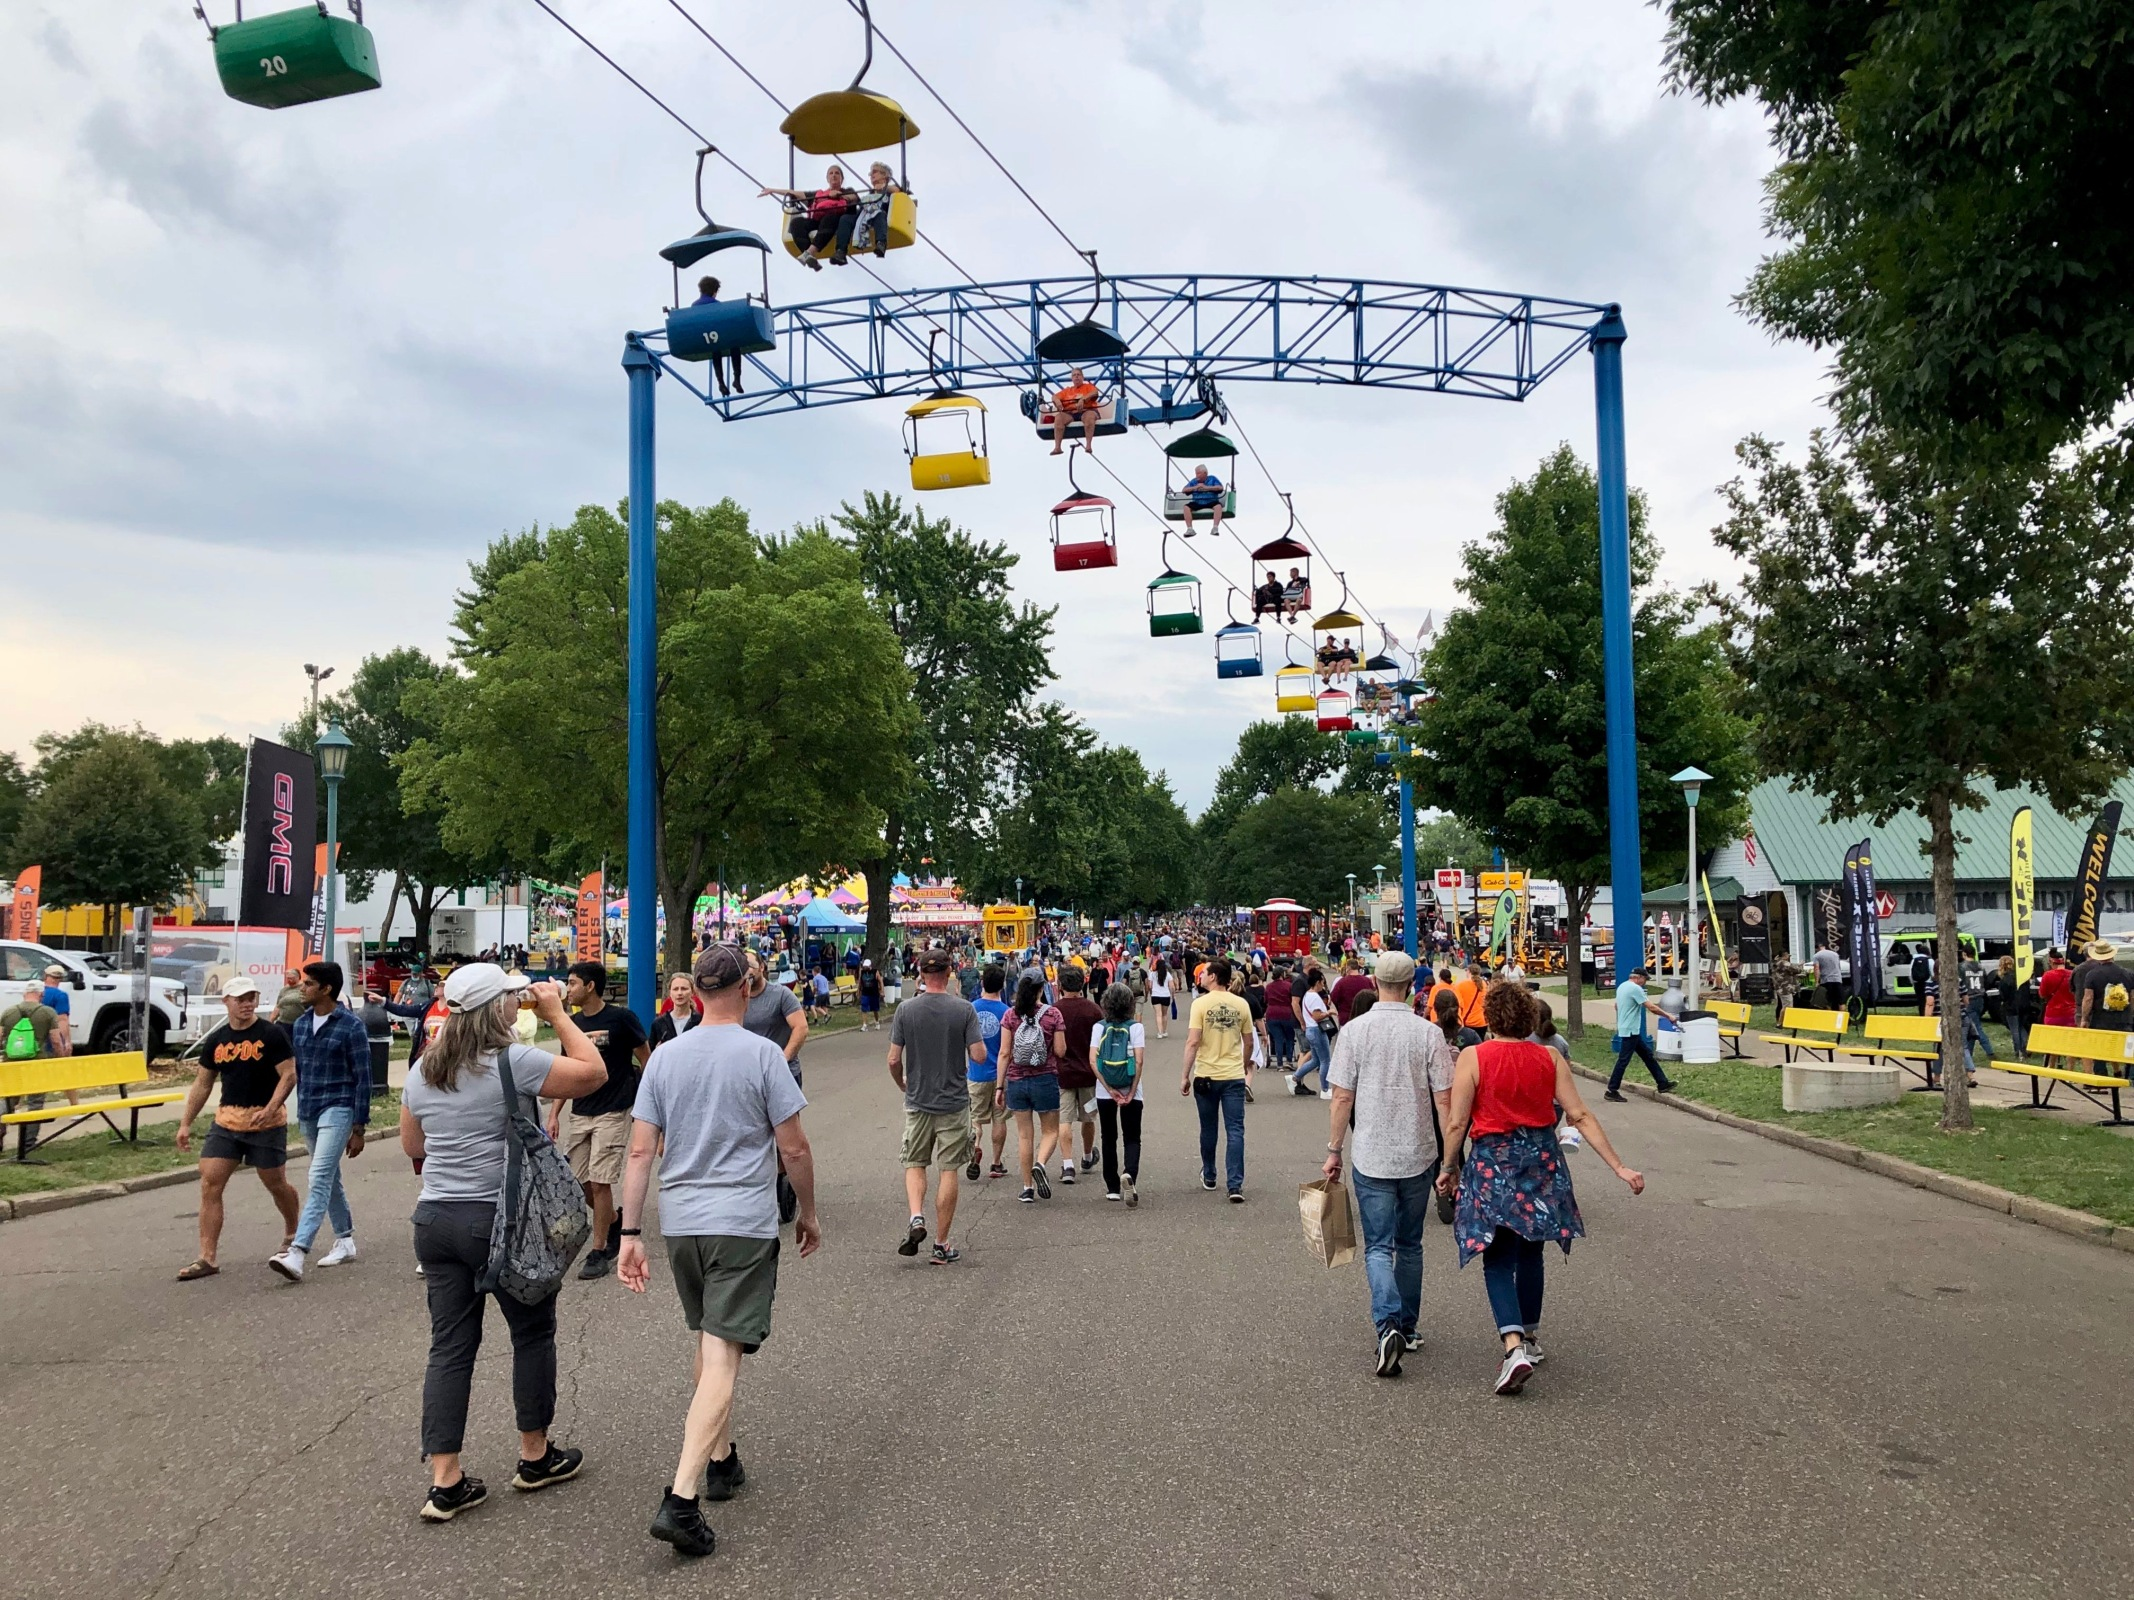 people walk below the sky ride at the state fair